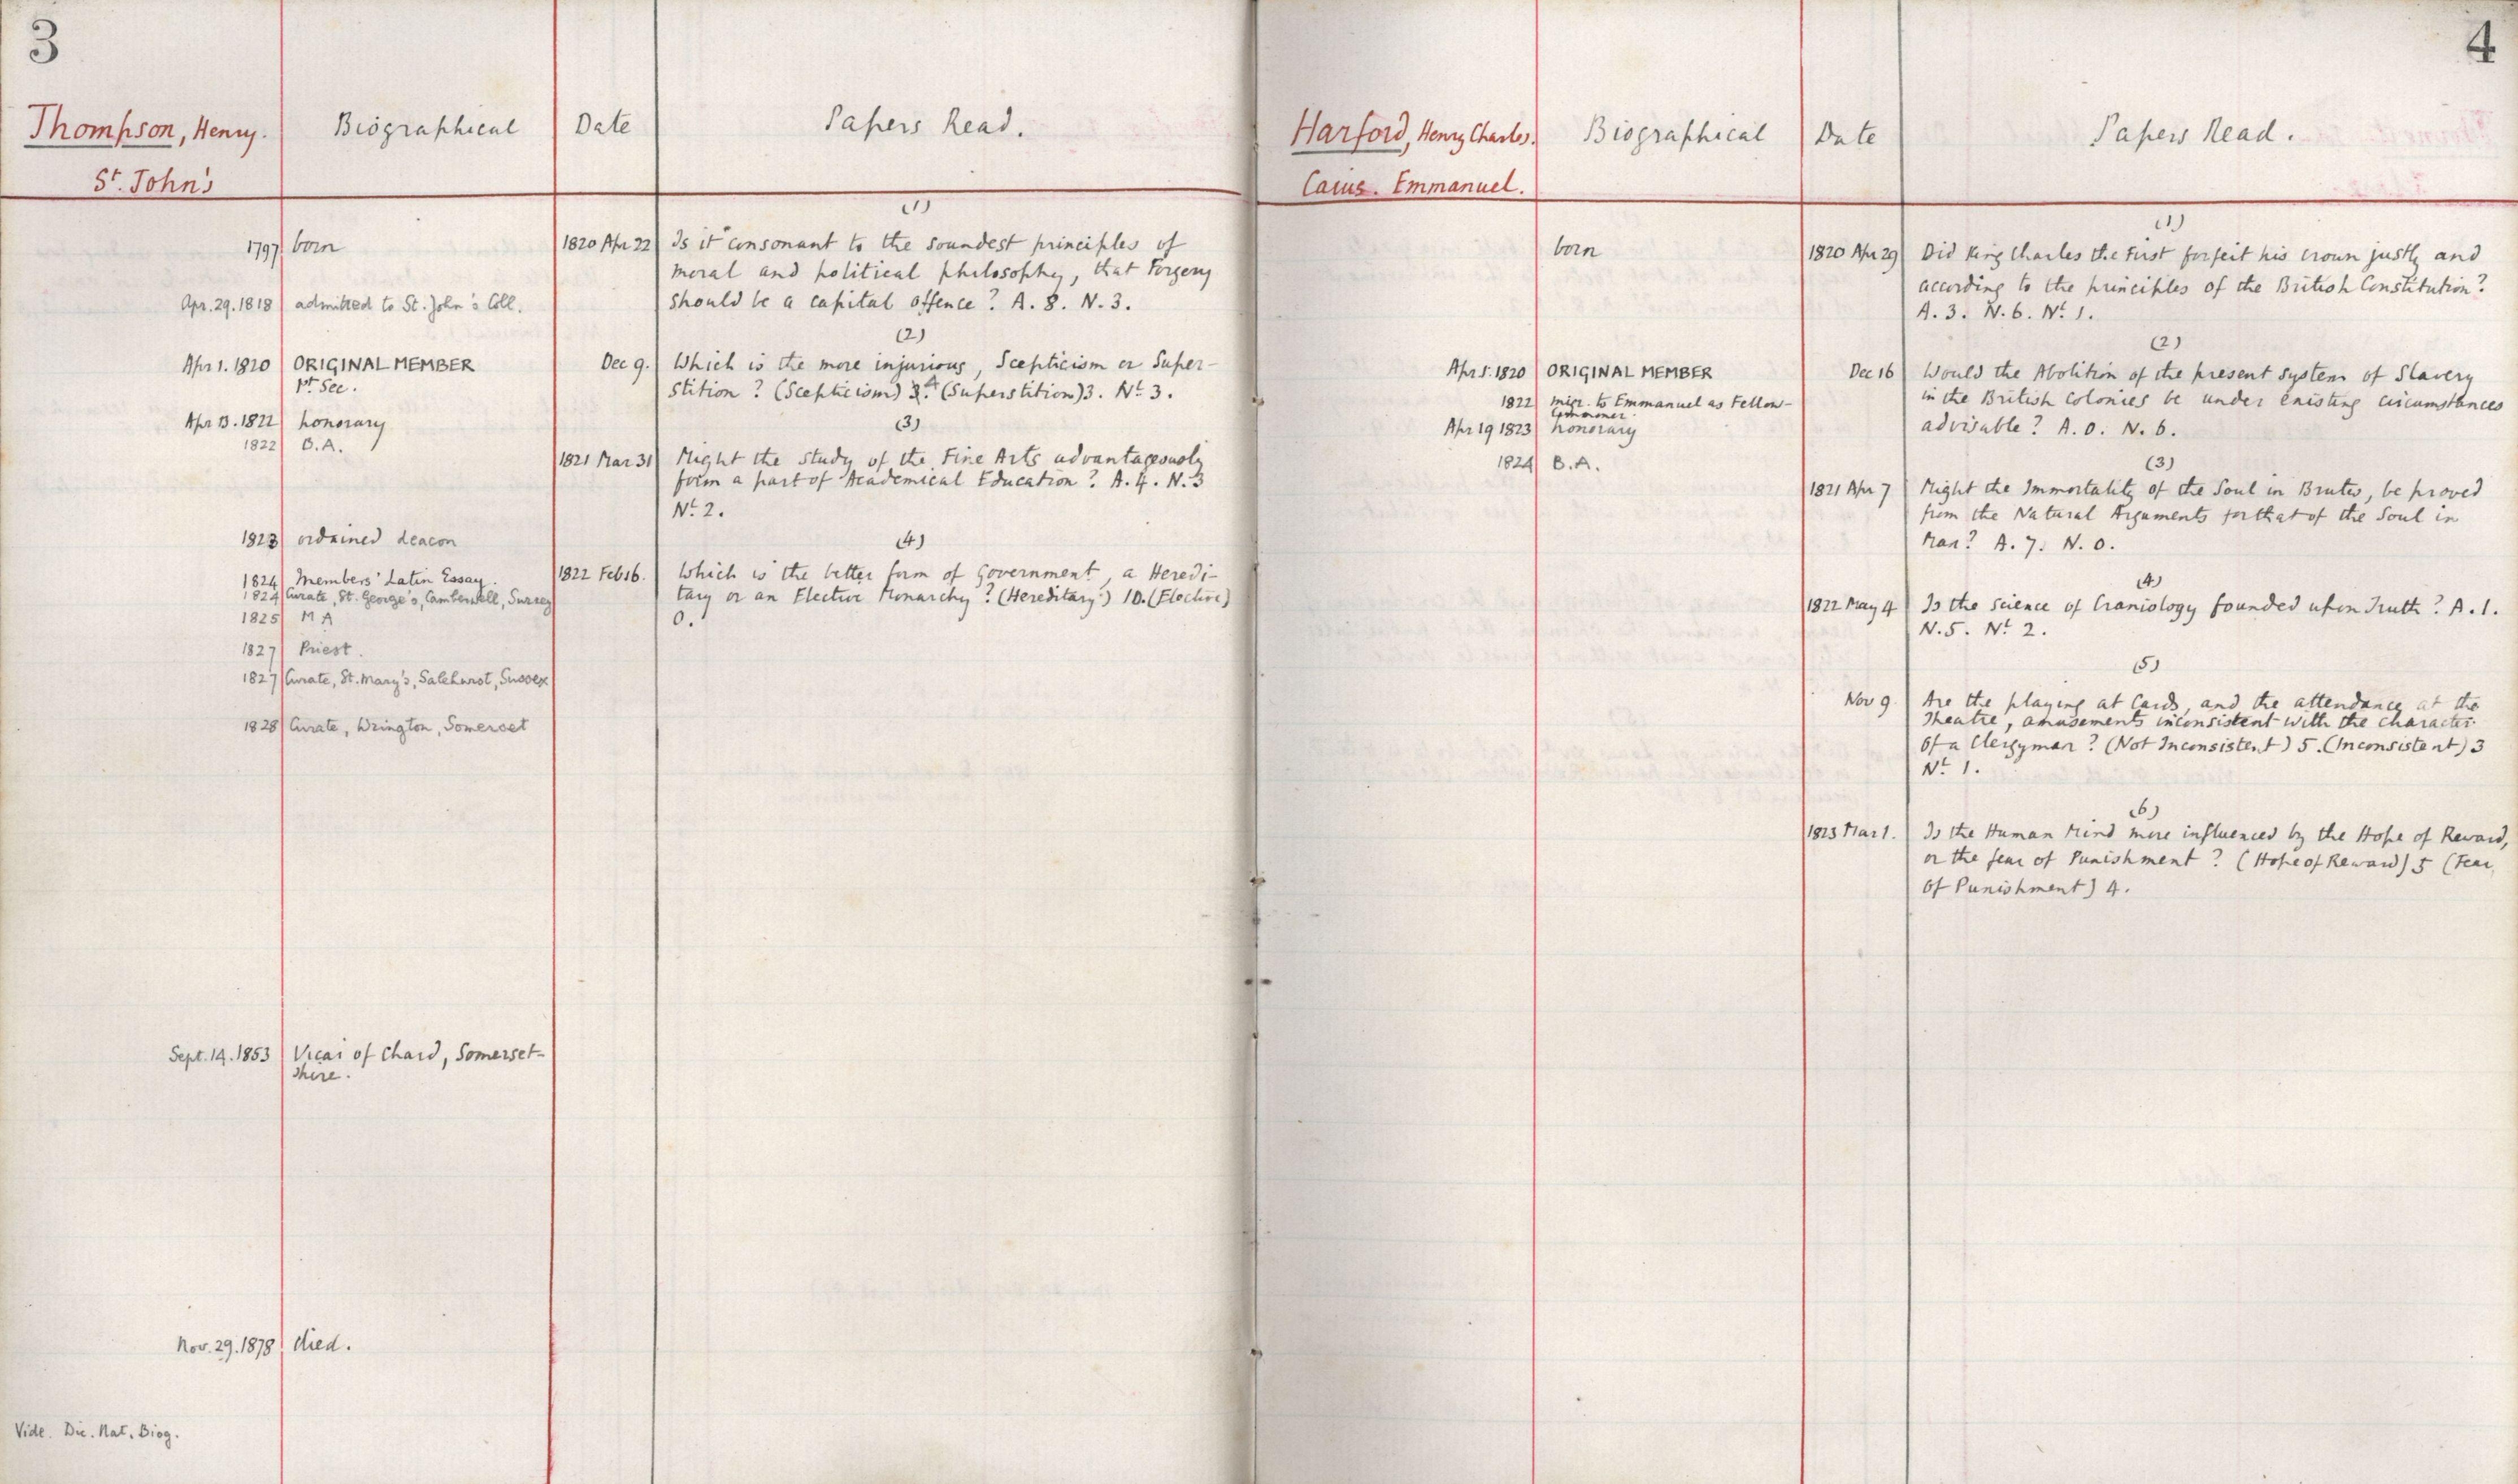 Register entries for Henry Thompson and Henry Charles Harford. [KCAS/39/3/1, 3-4]